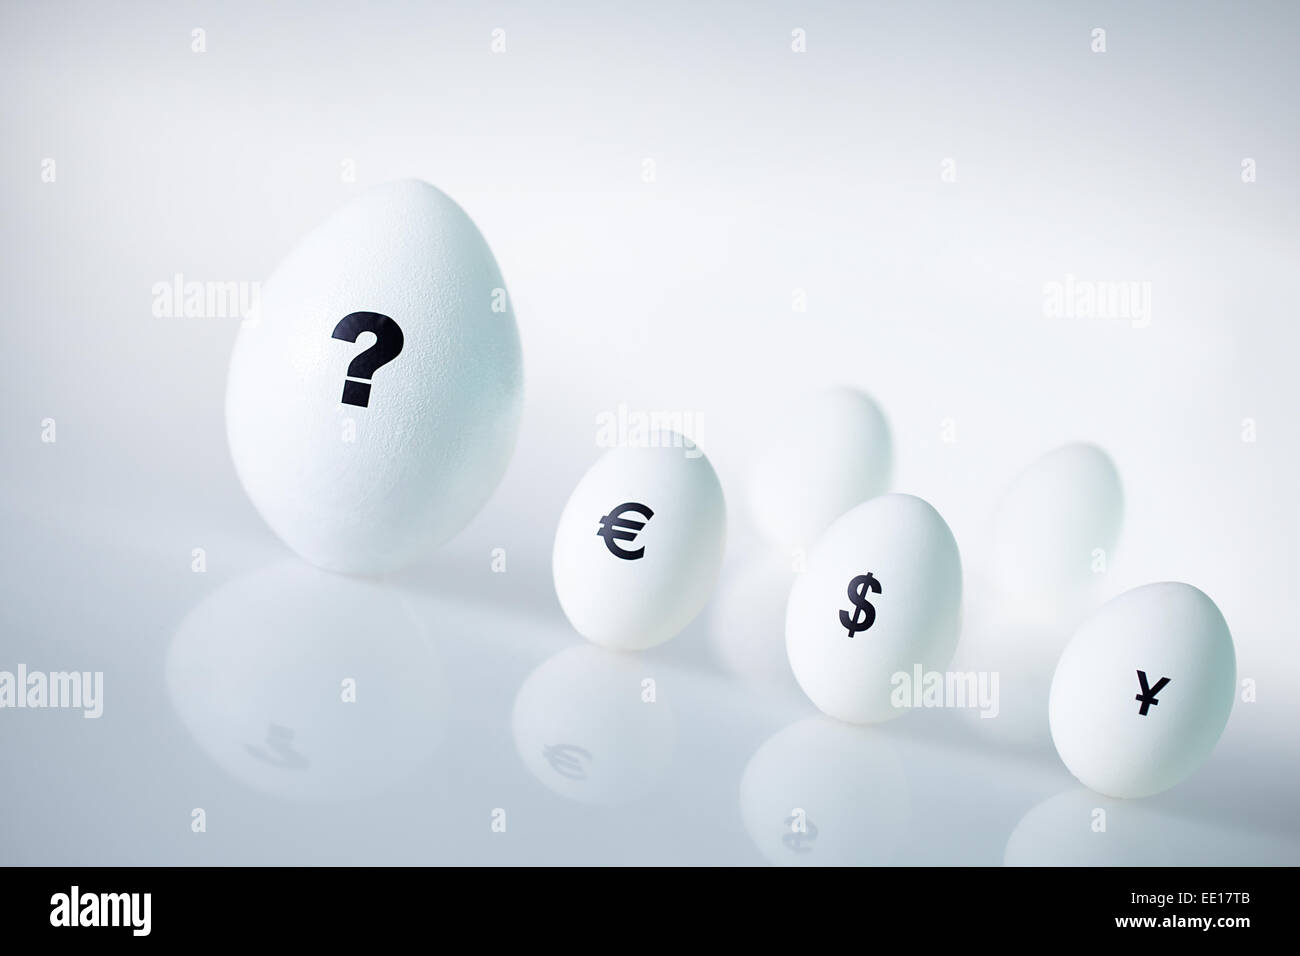 Egg showing unpredictable situation in economy - Stock Image